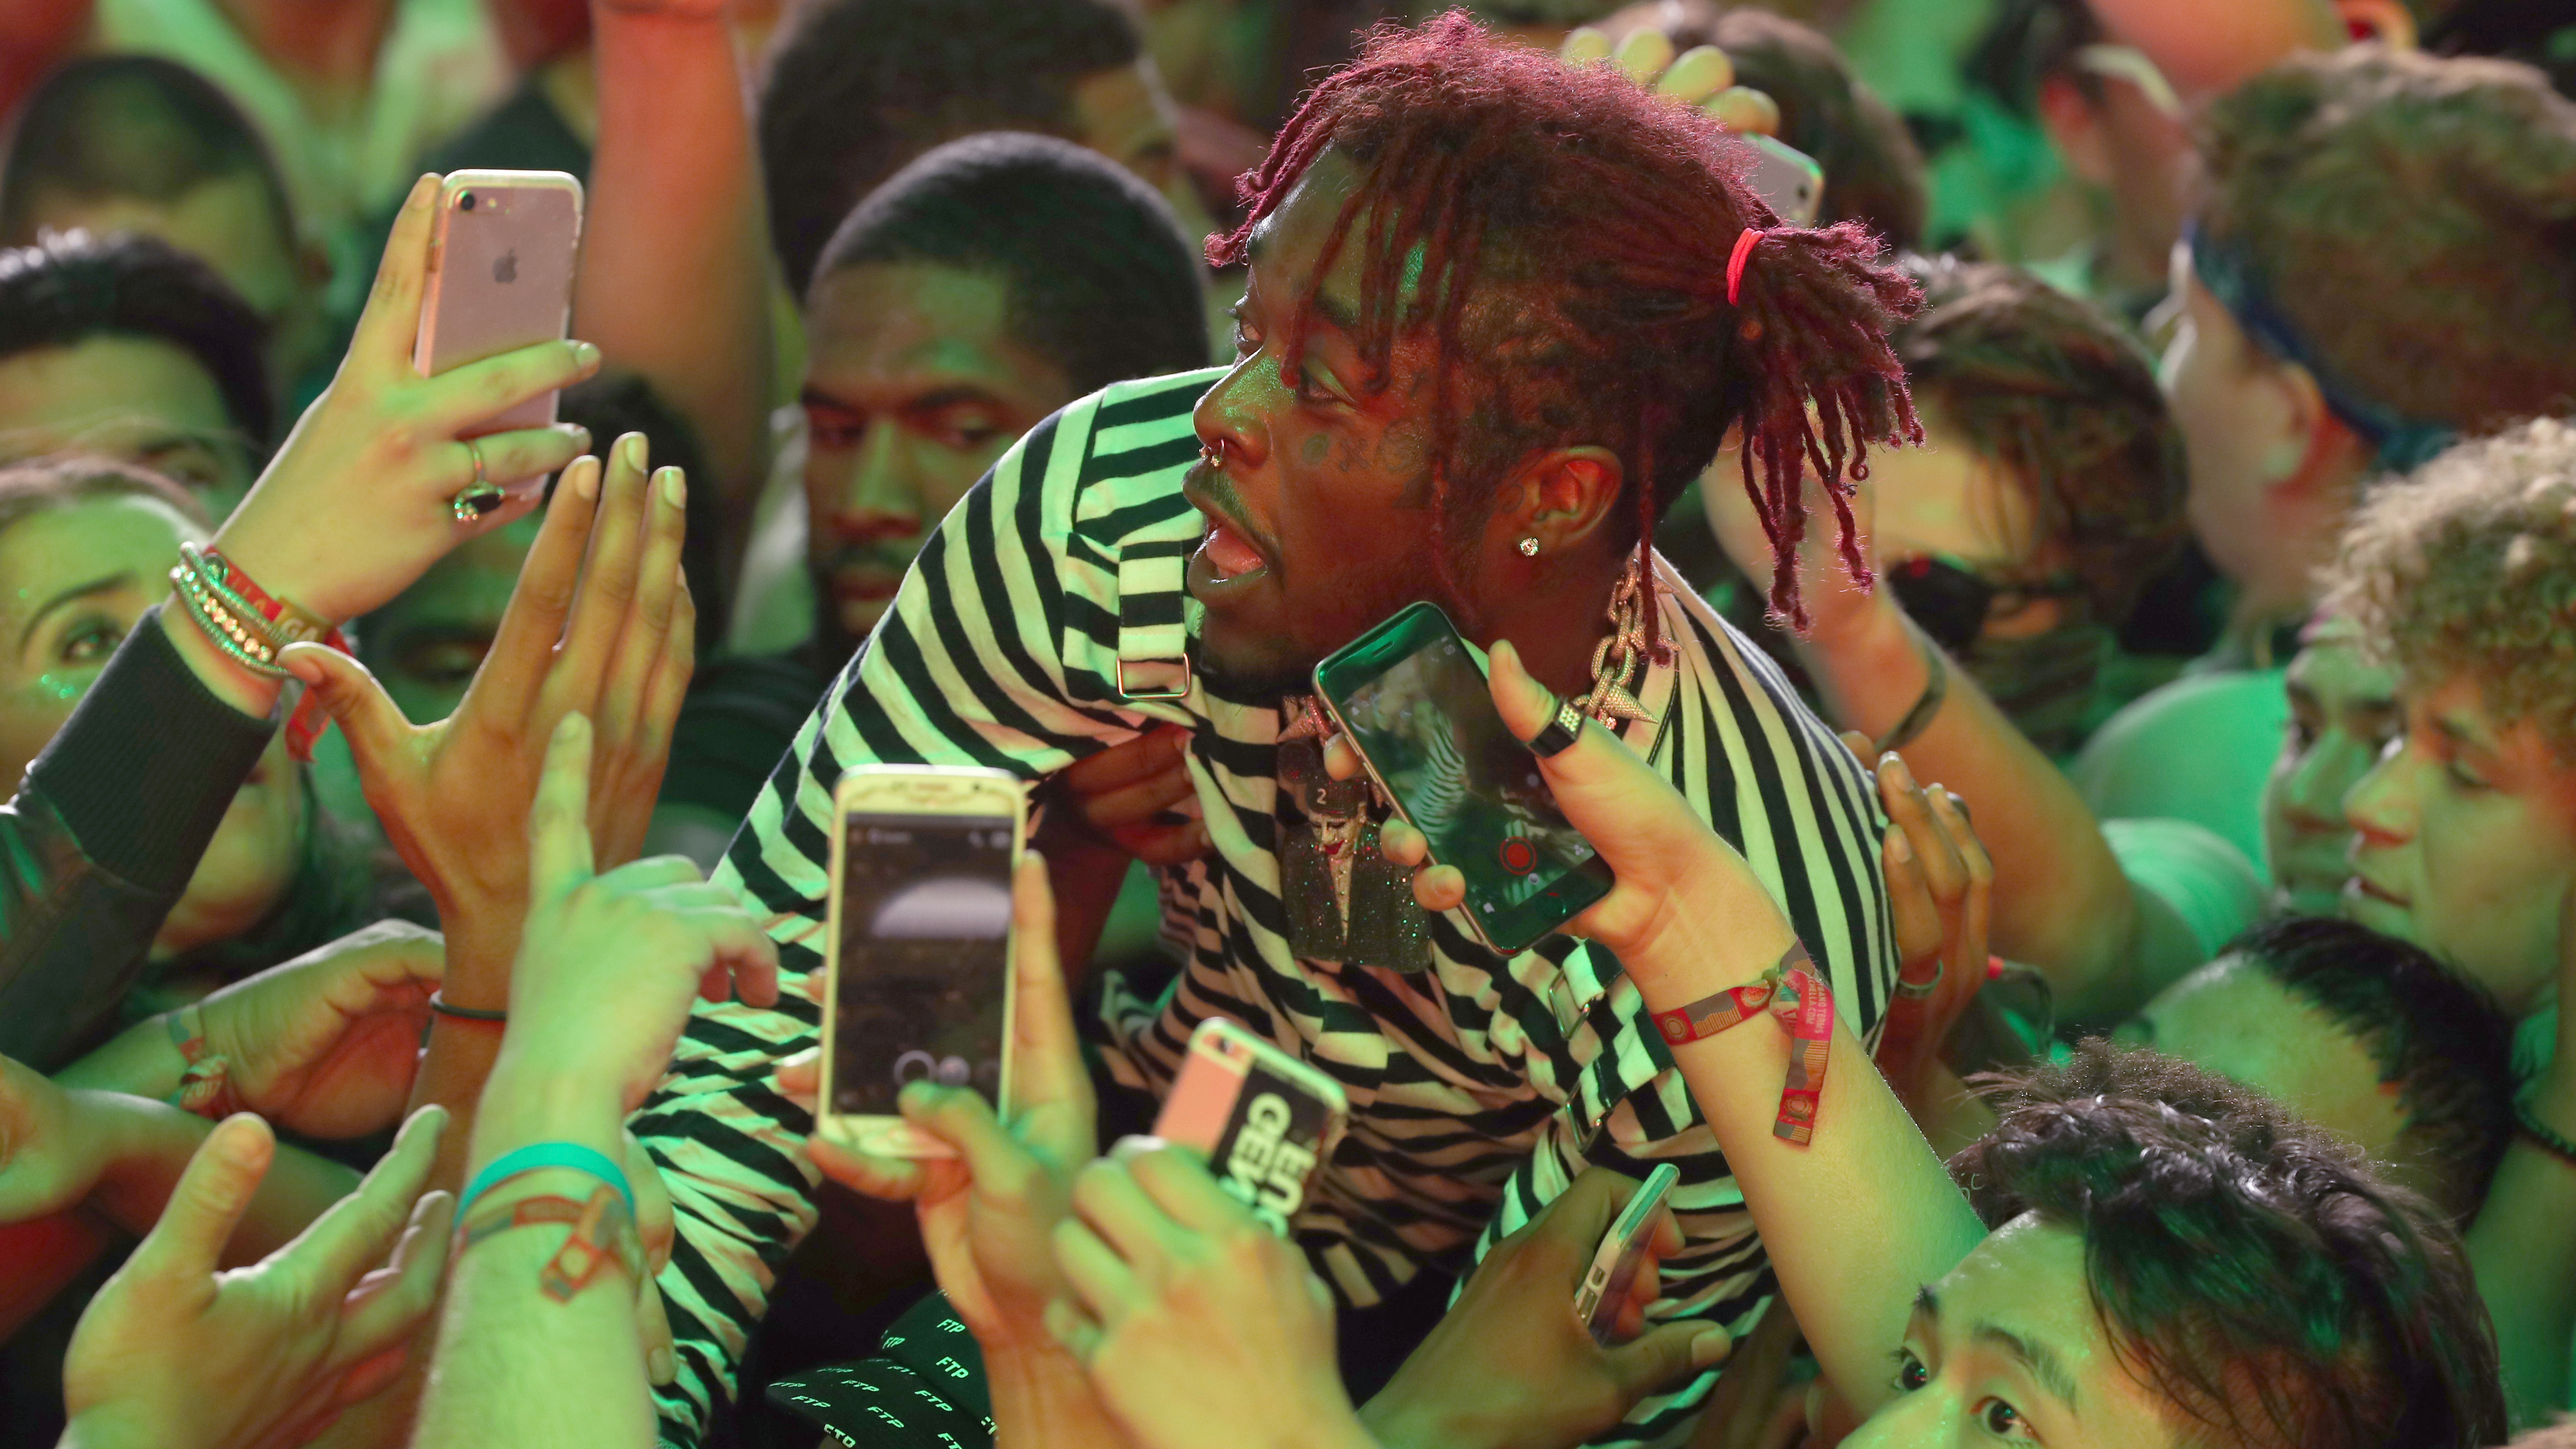 Why Black Boy Joy And Lil Uzi Vert's Melancholy Are All The Rage